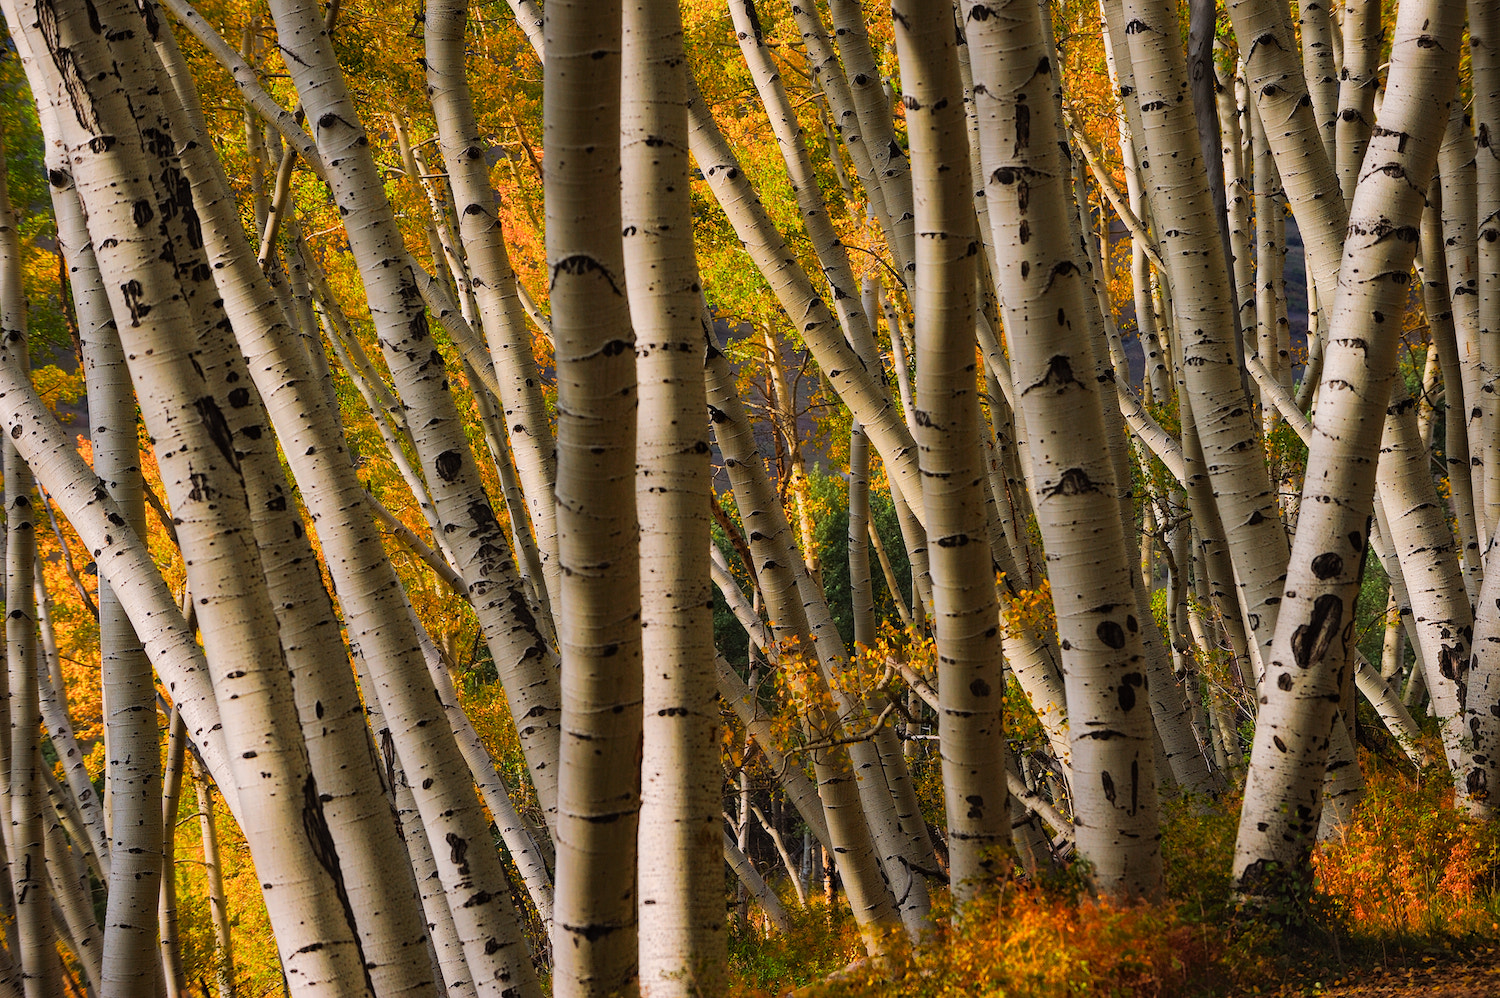 Photograph Aspen Maze by Shane McDermott on 500px